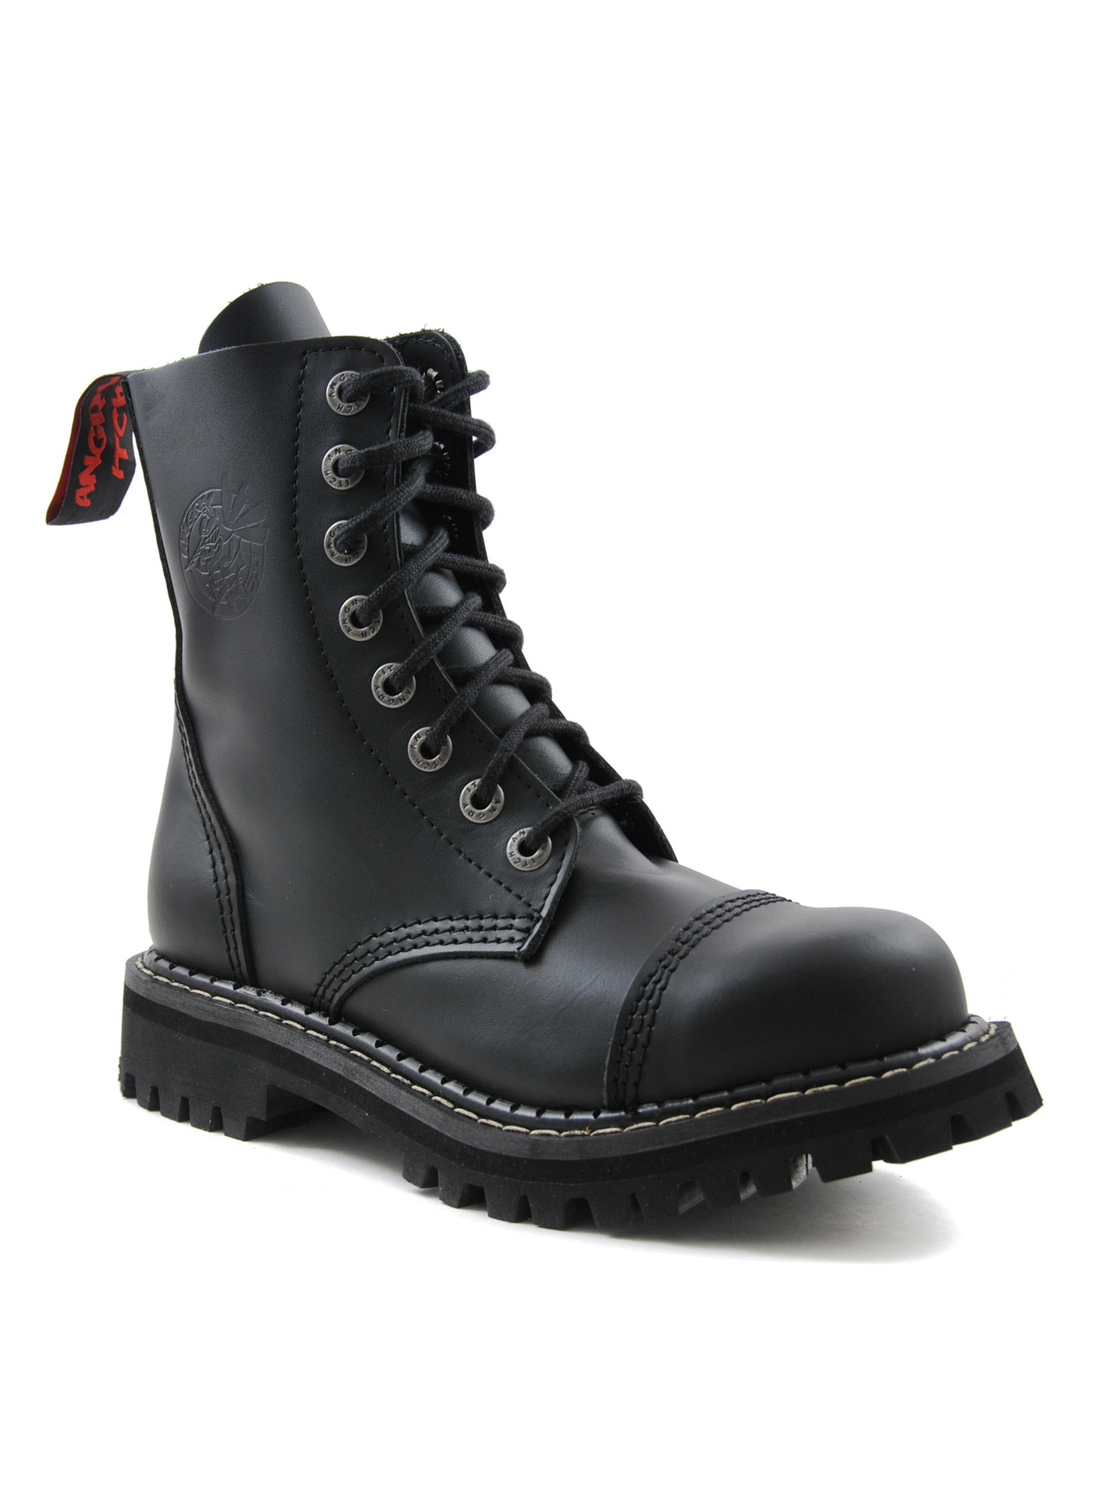 Angry Itch 8 Eye Steel Toe Boots Leather Black